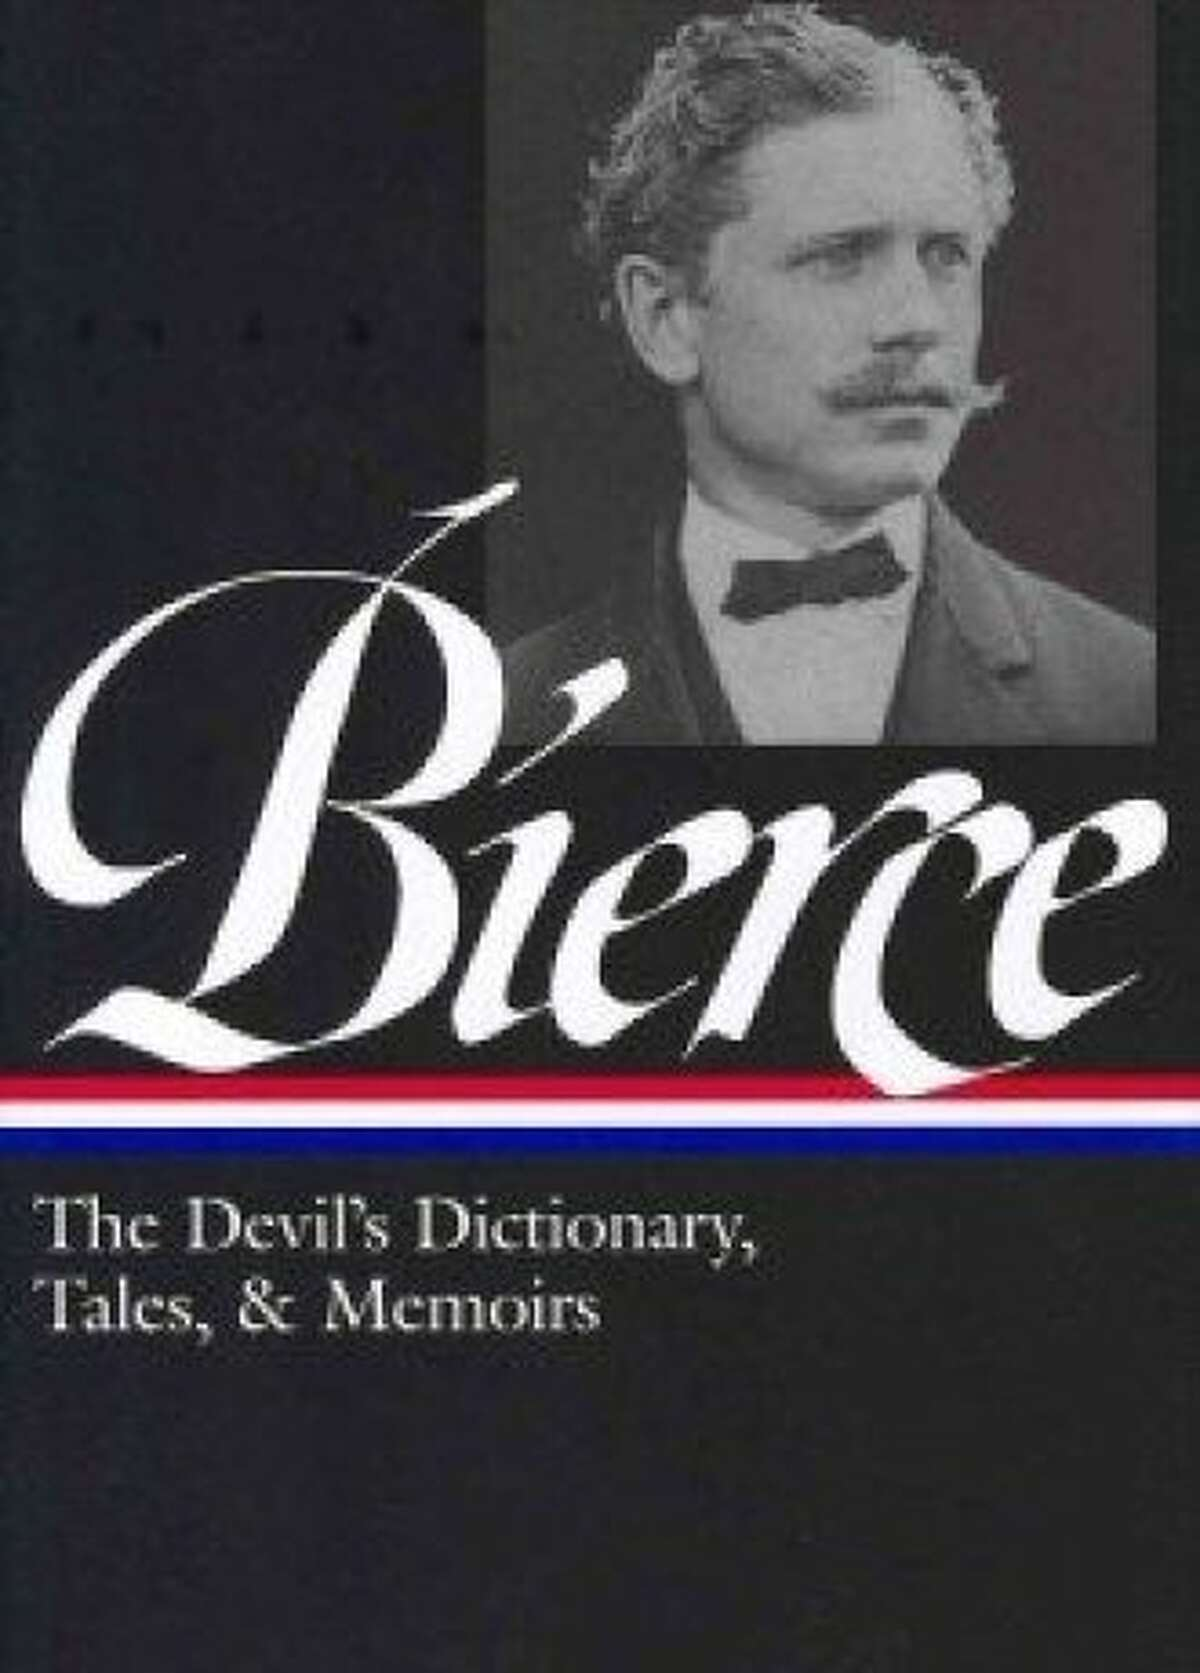 The Devil's Dictionary, Tales, & Memoirs By Ambrose Bierce; edited by S.T. Joshi